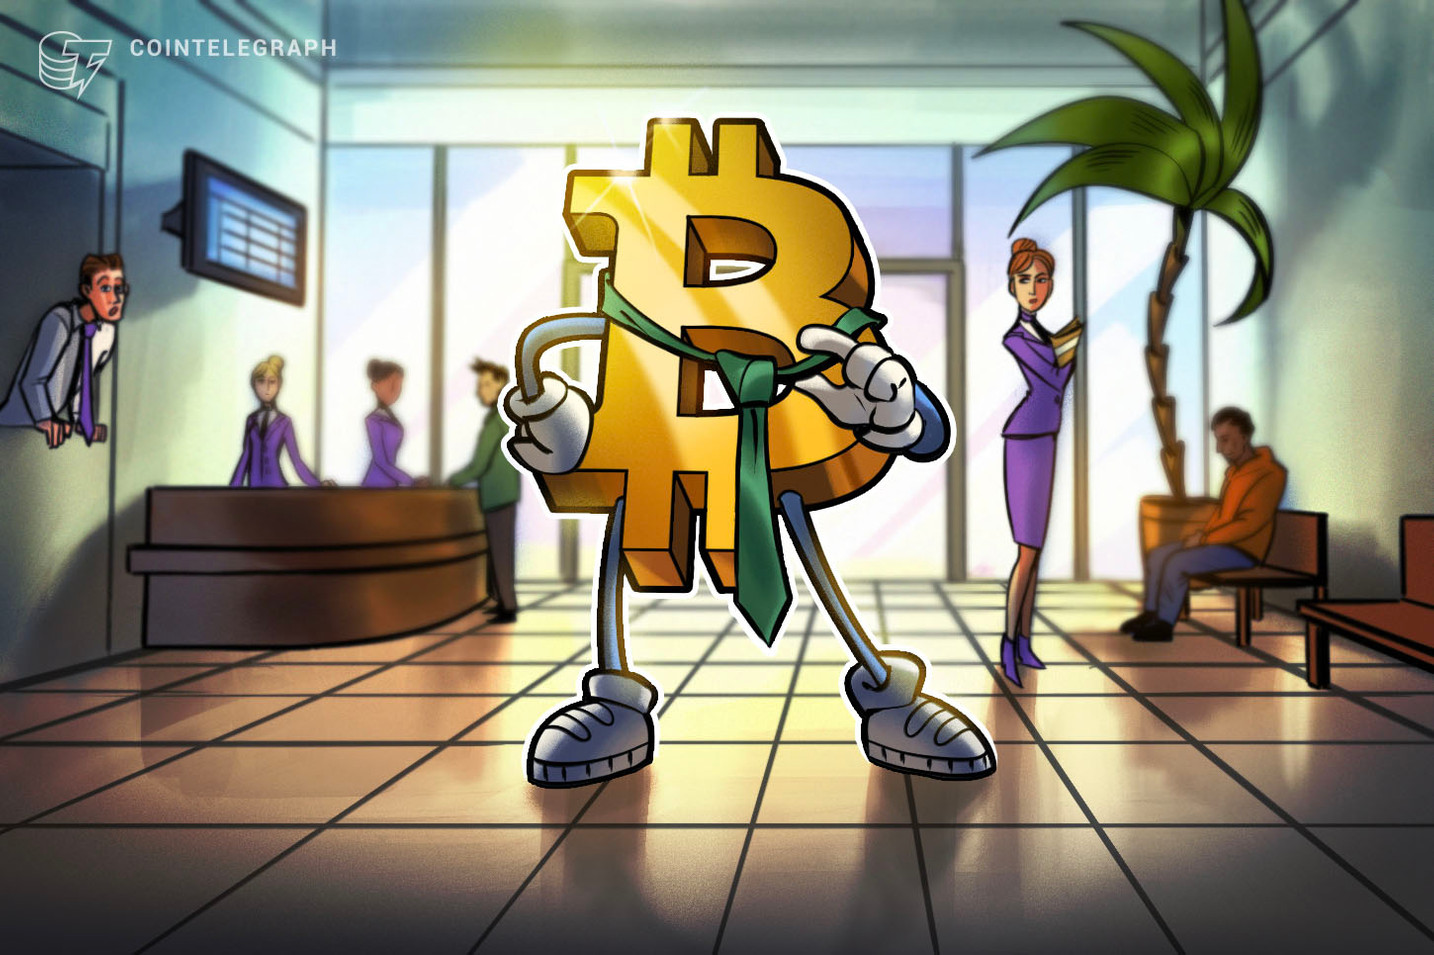 MicroStrategy will pitch Bitcoin to 1,400 public companies: How will BTC price react?